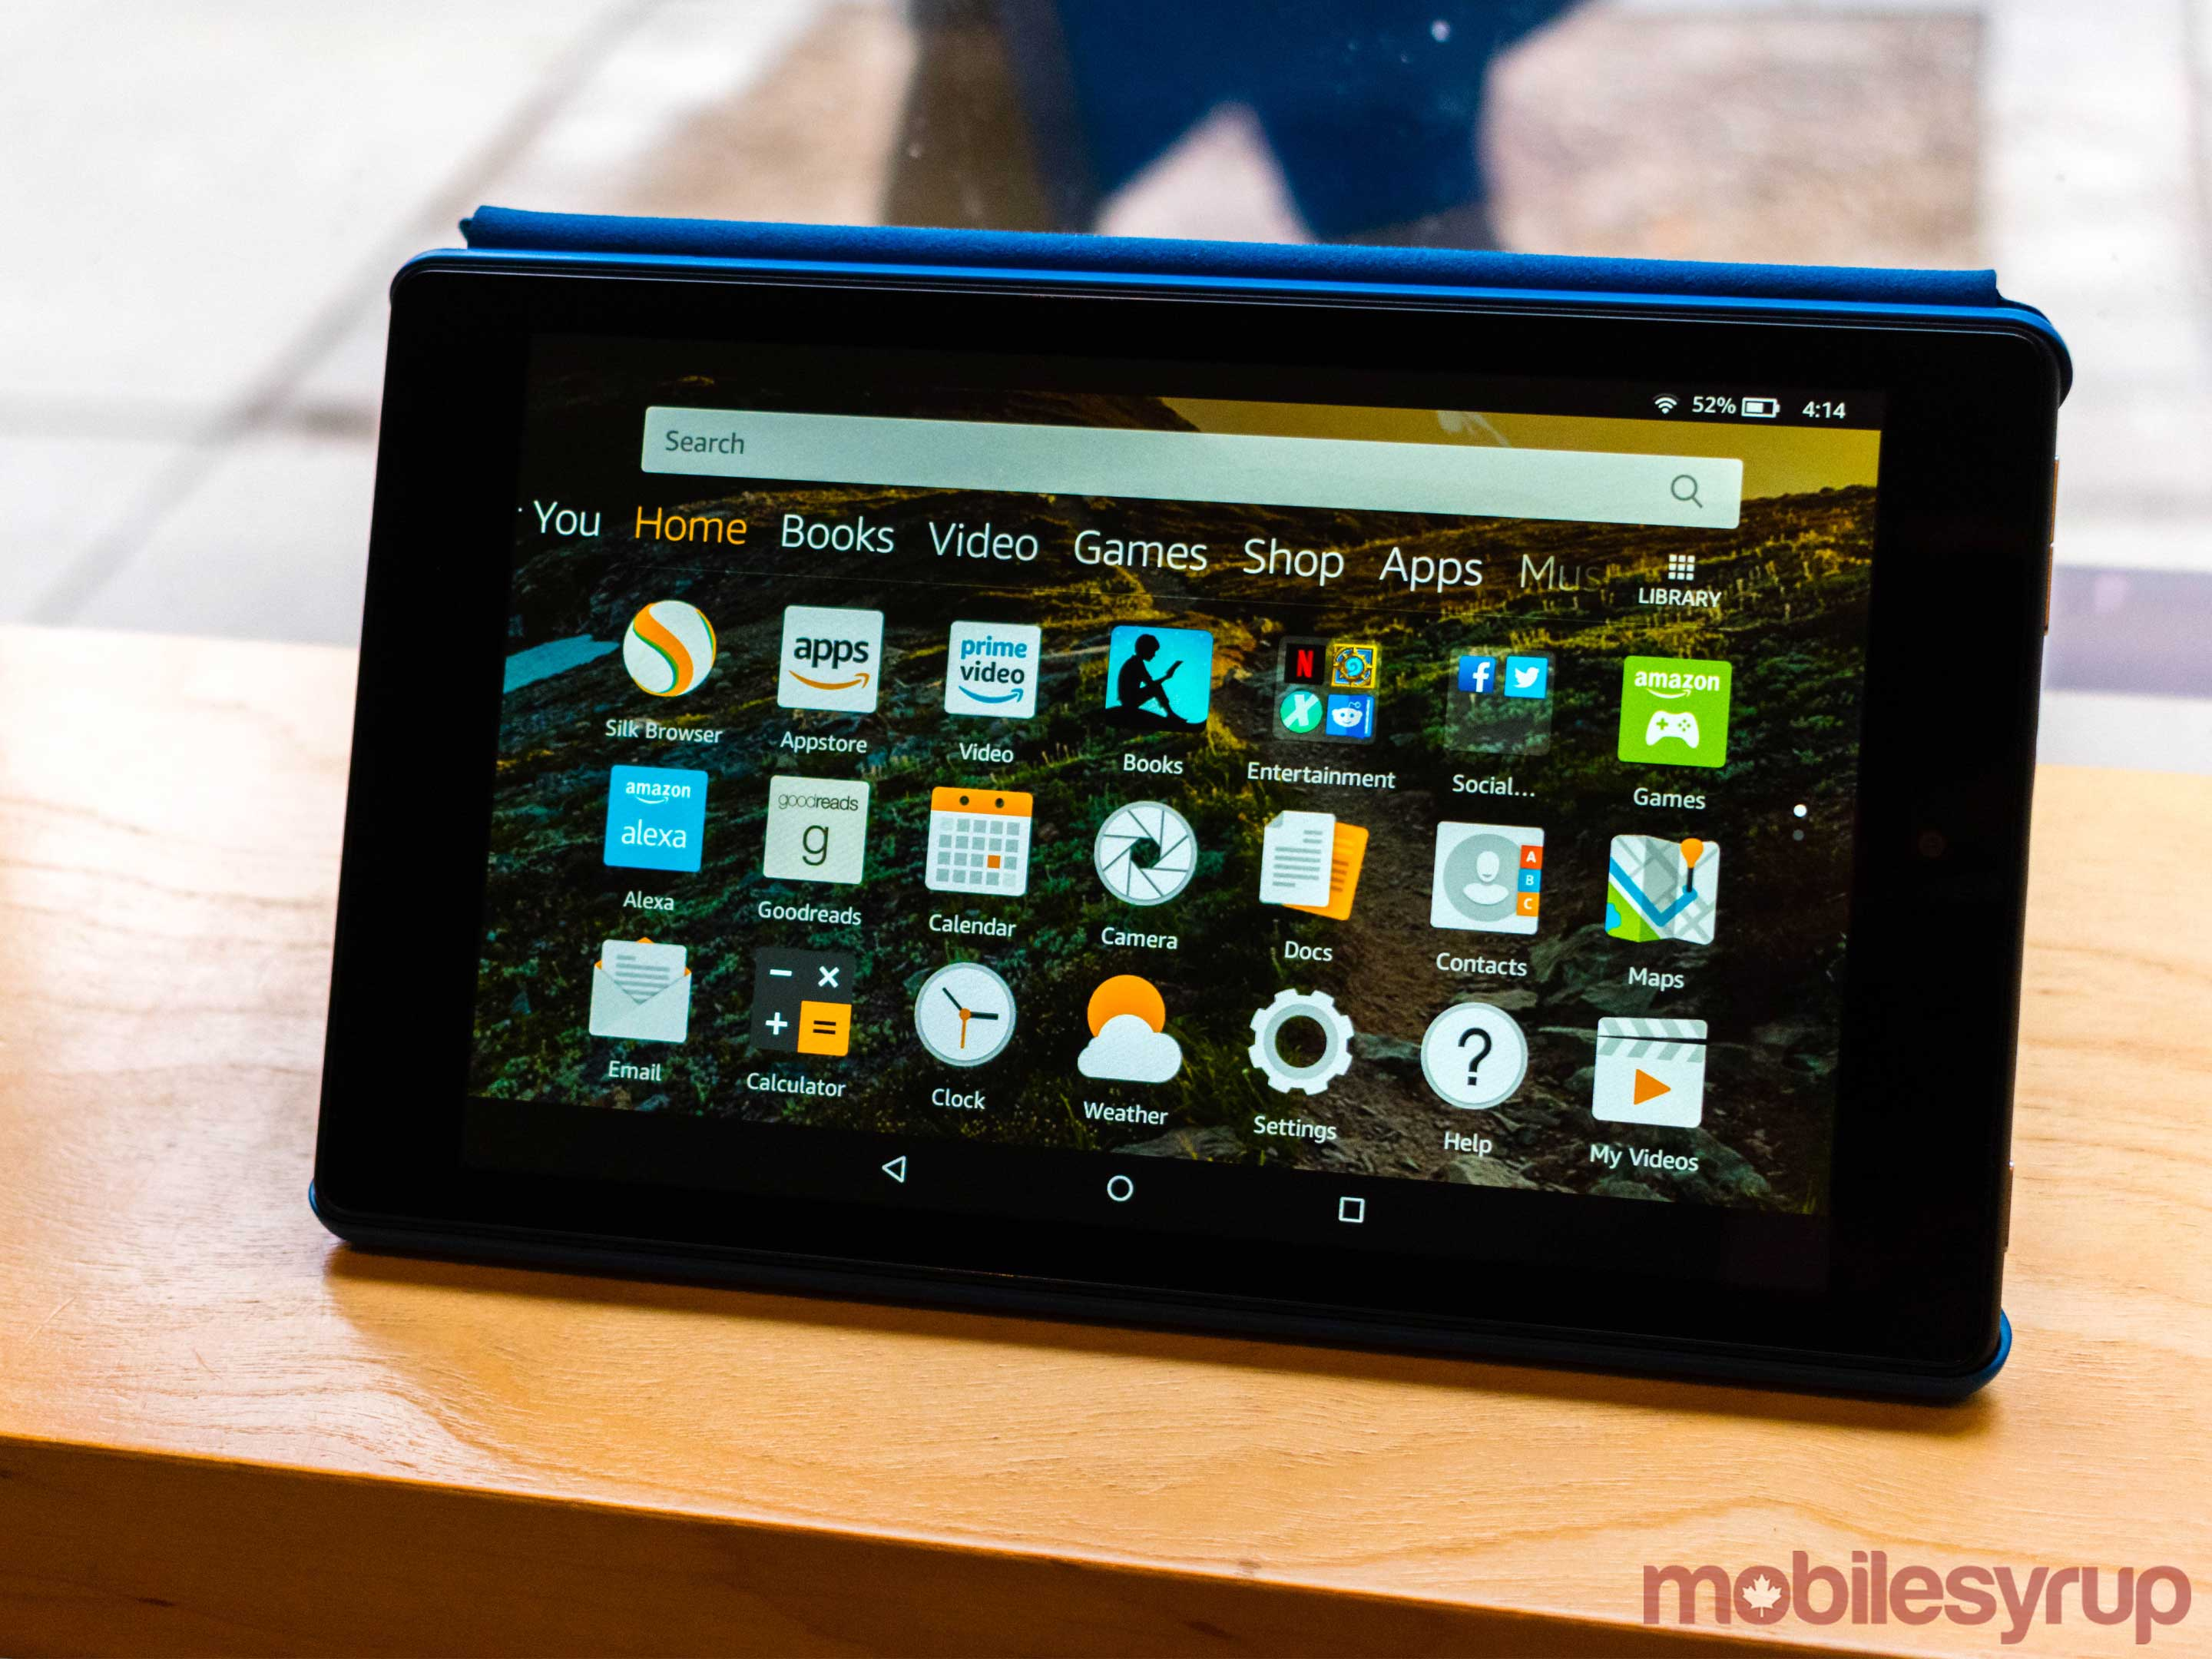 Amazon tablet showing the device's home screen.